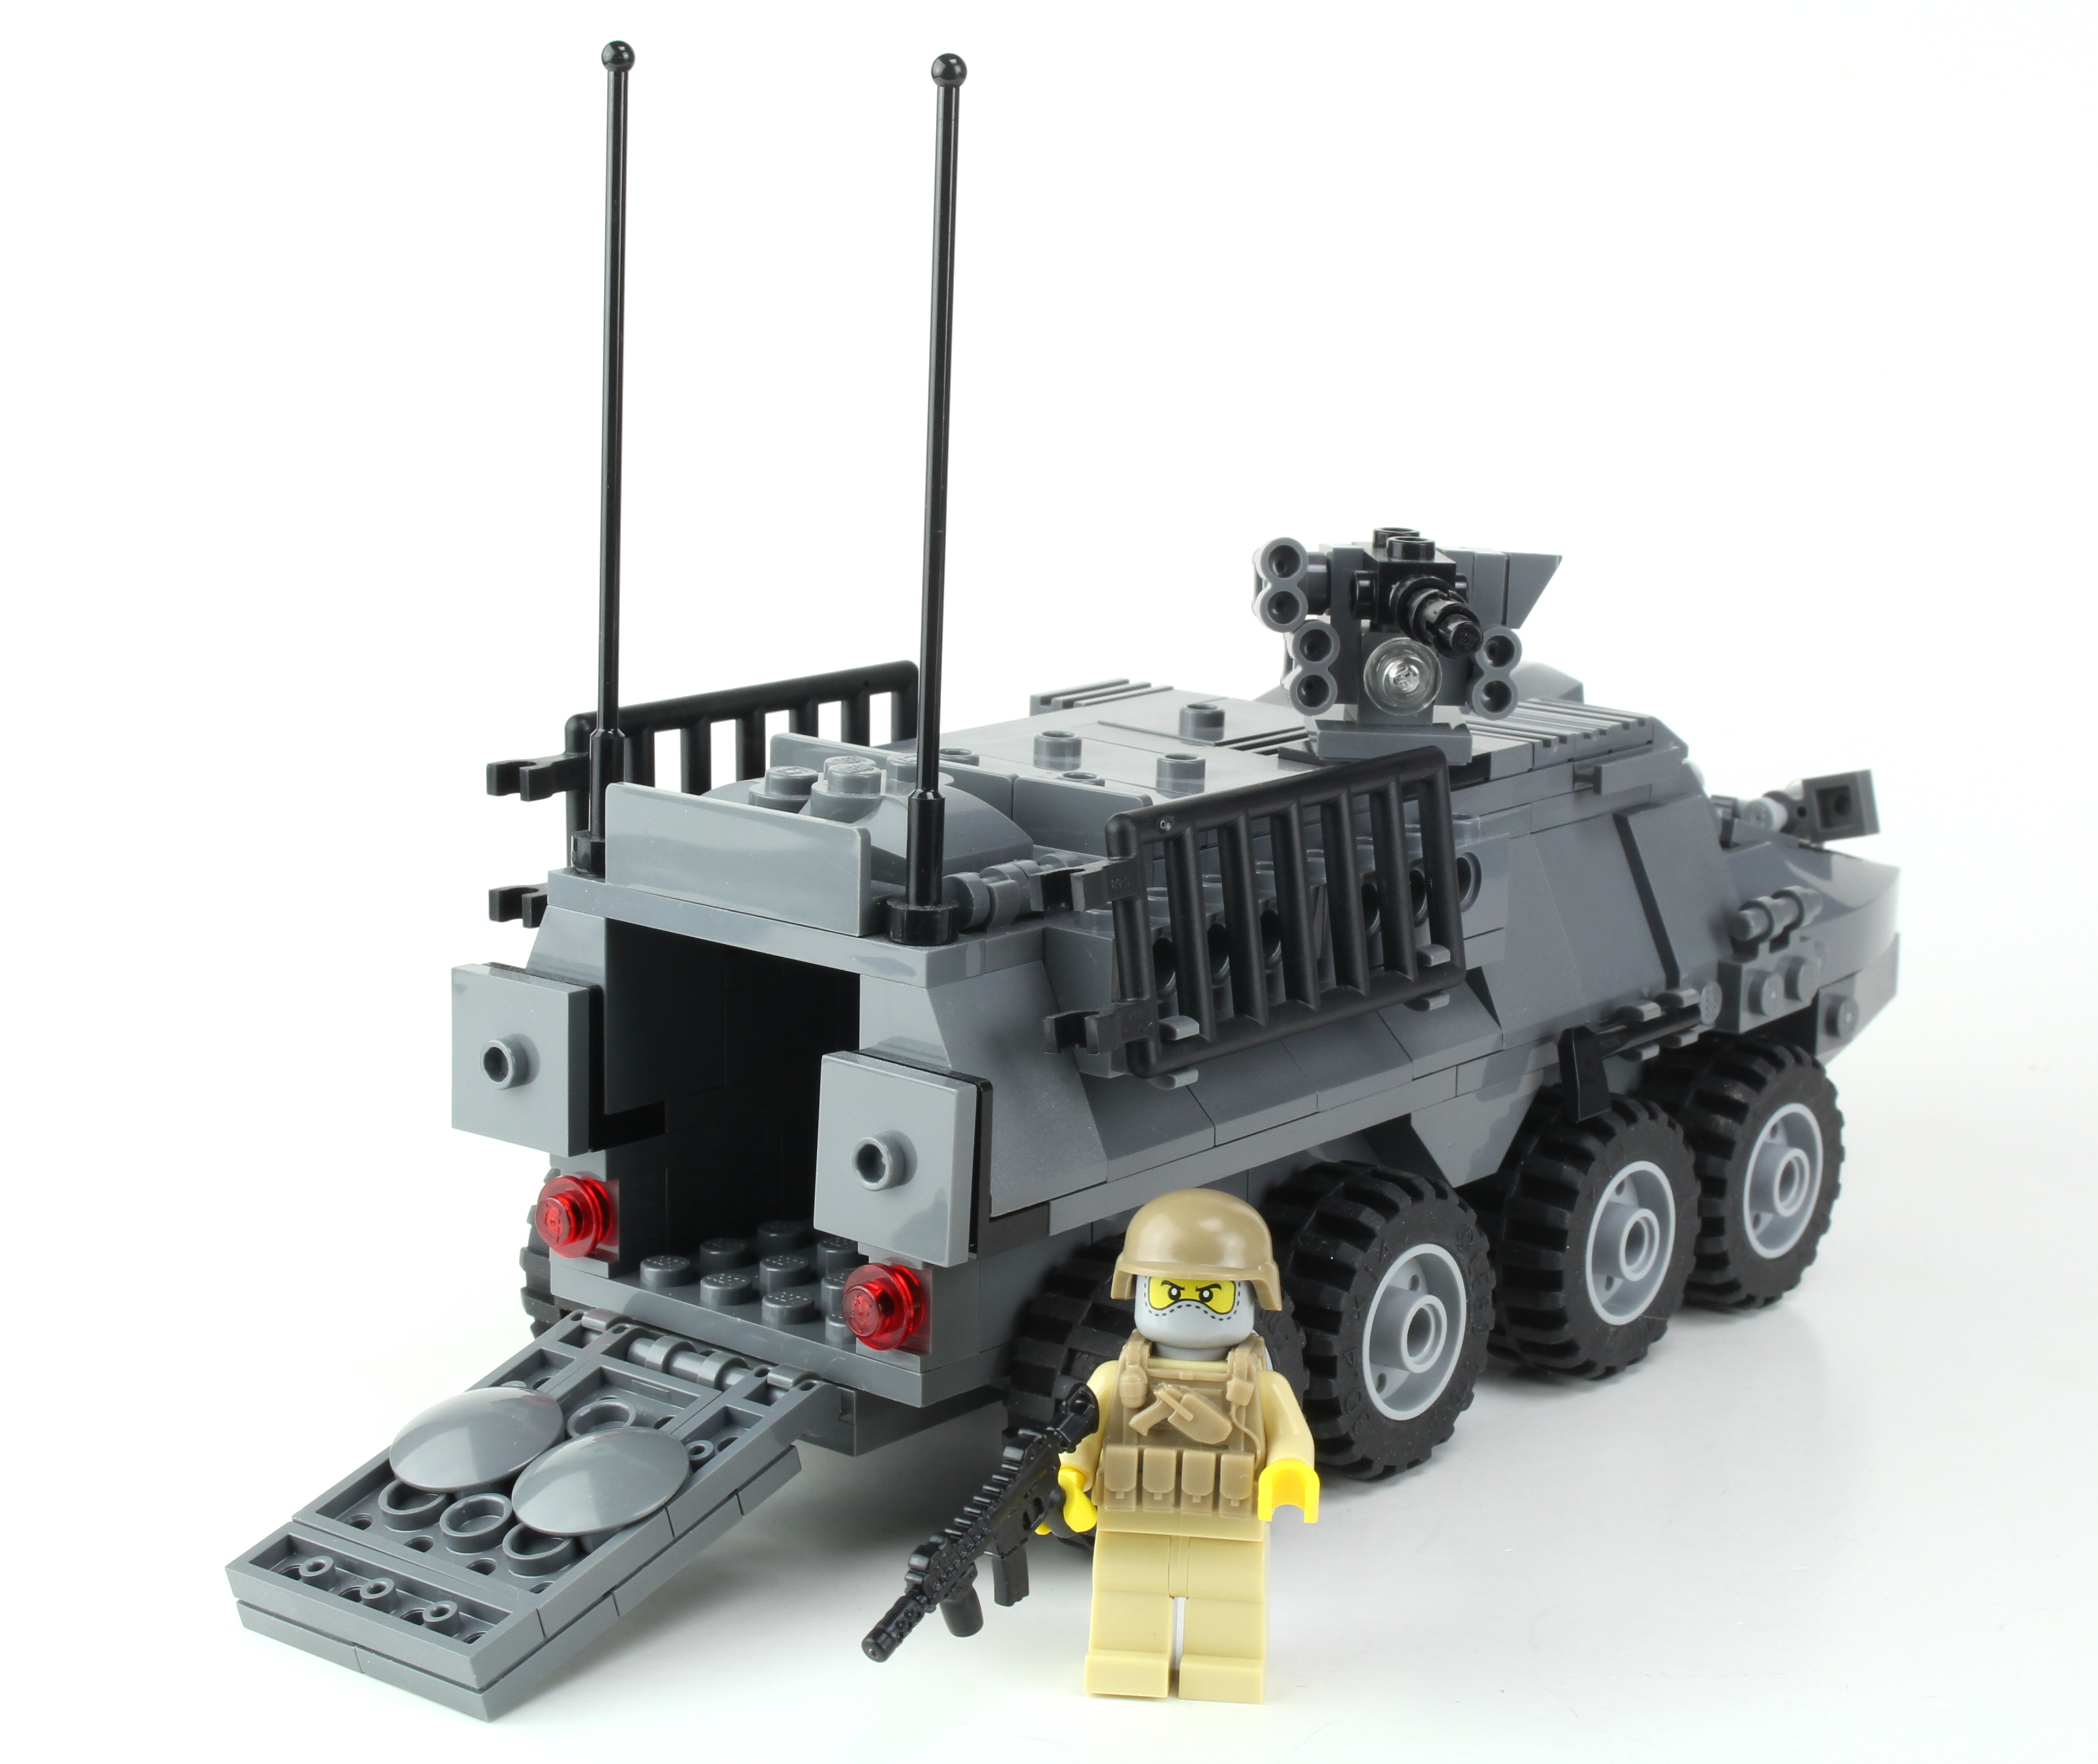 Army Stryker Tank Made With Real Lego Bricks